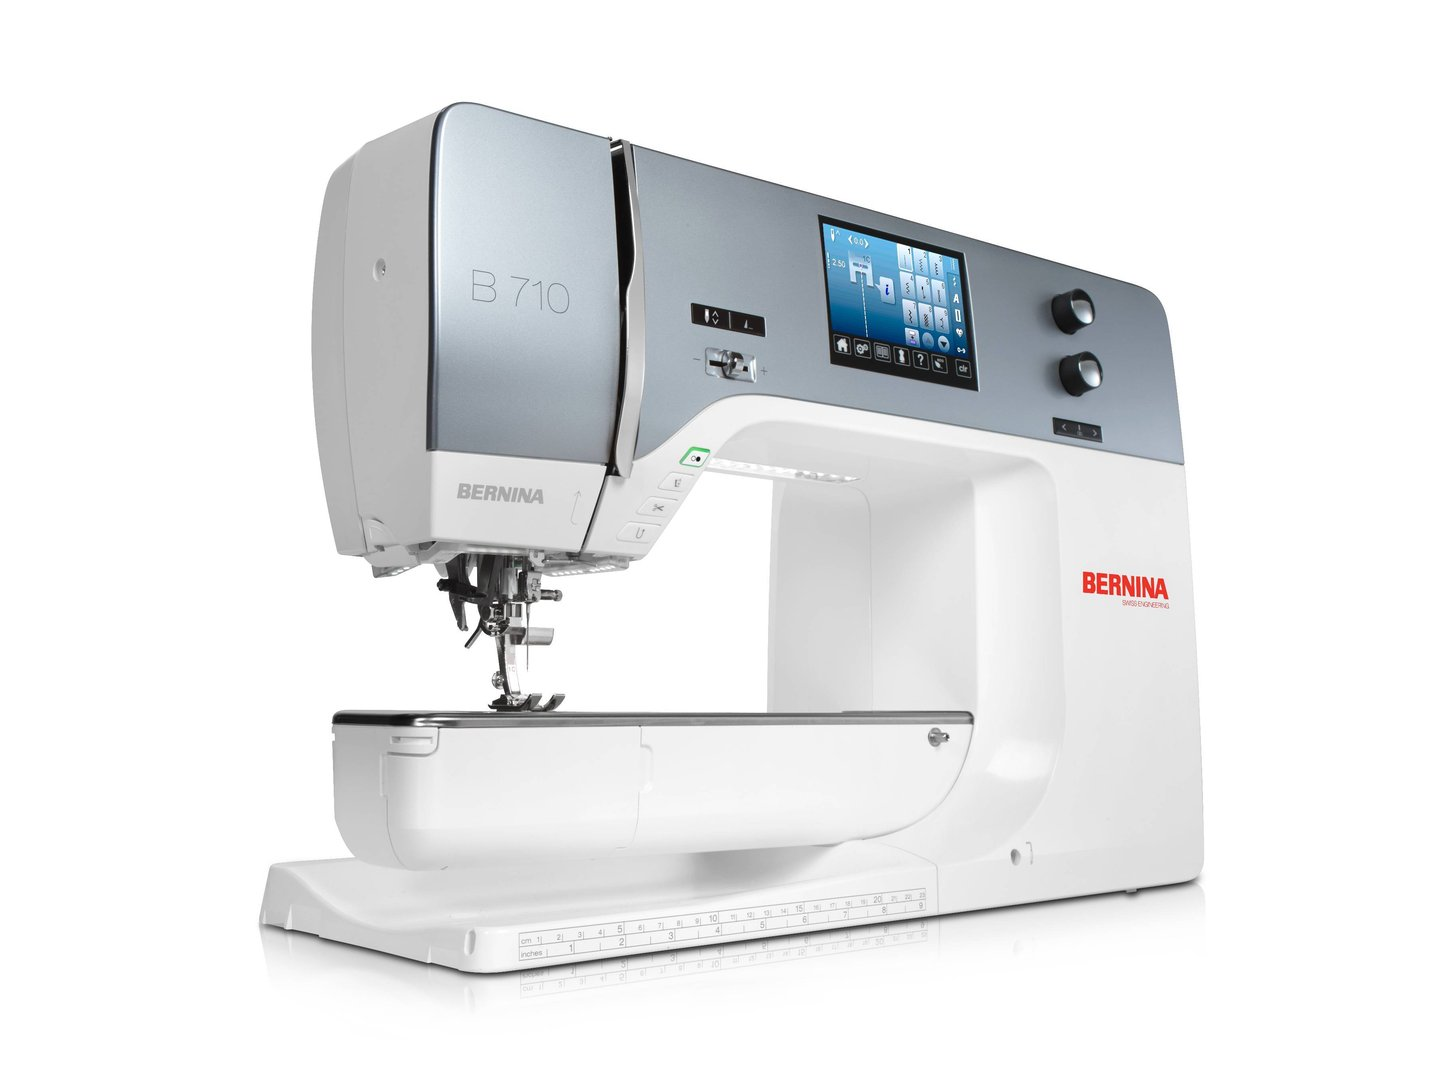 BERNINA B 710 Nähmaschine mit Dual-Transport